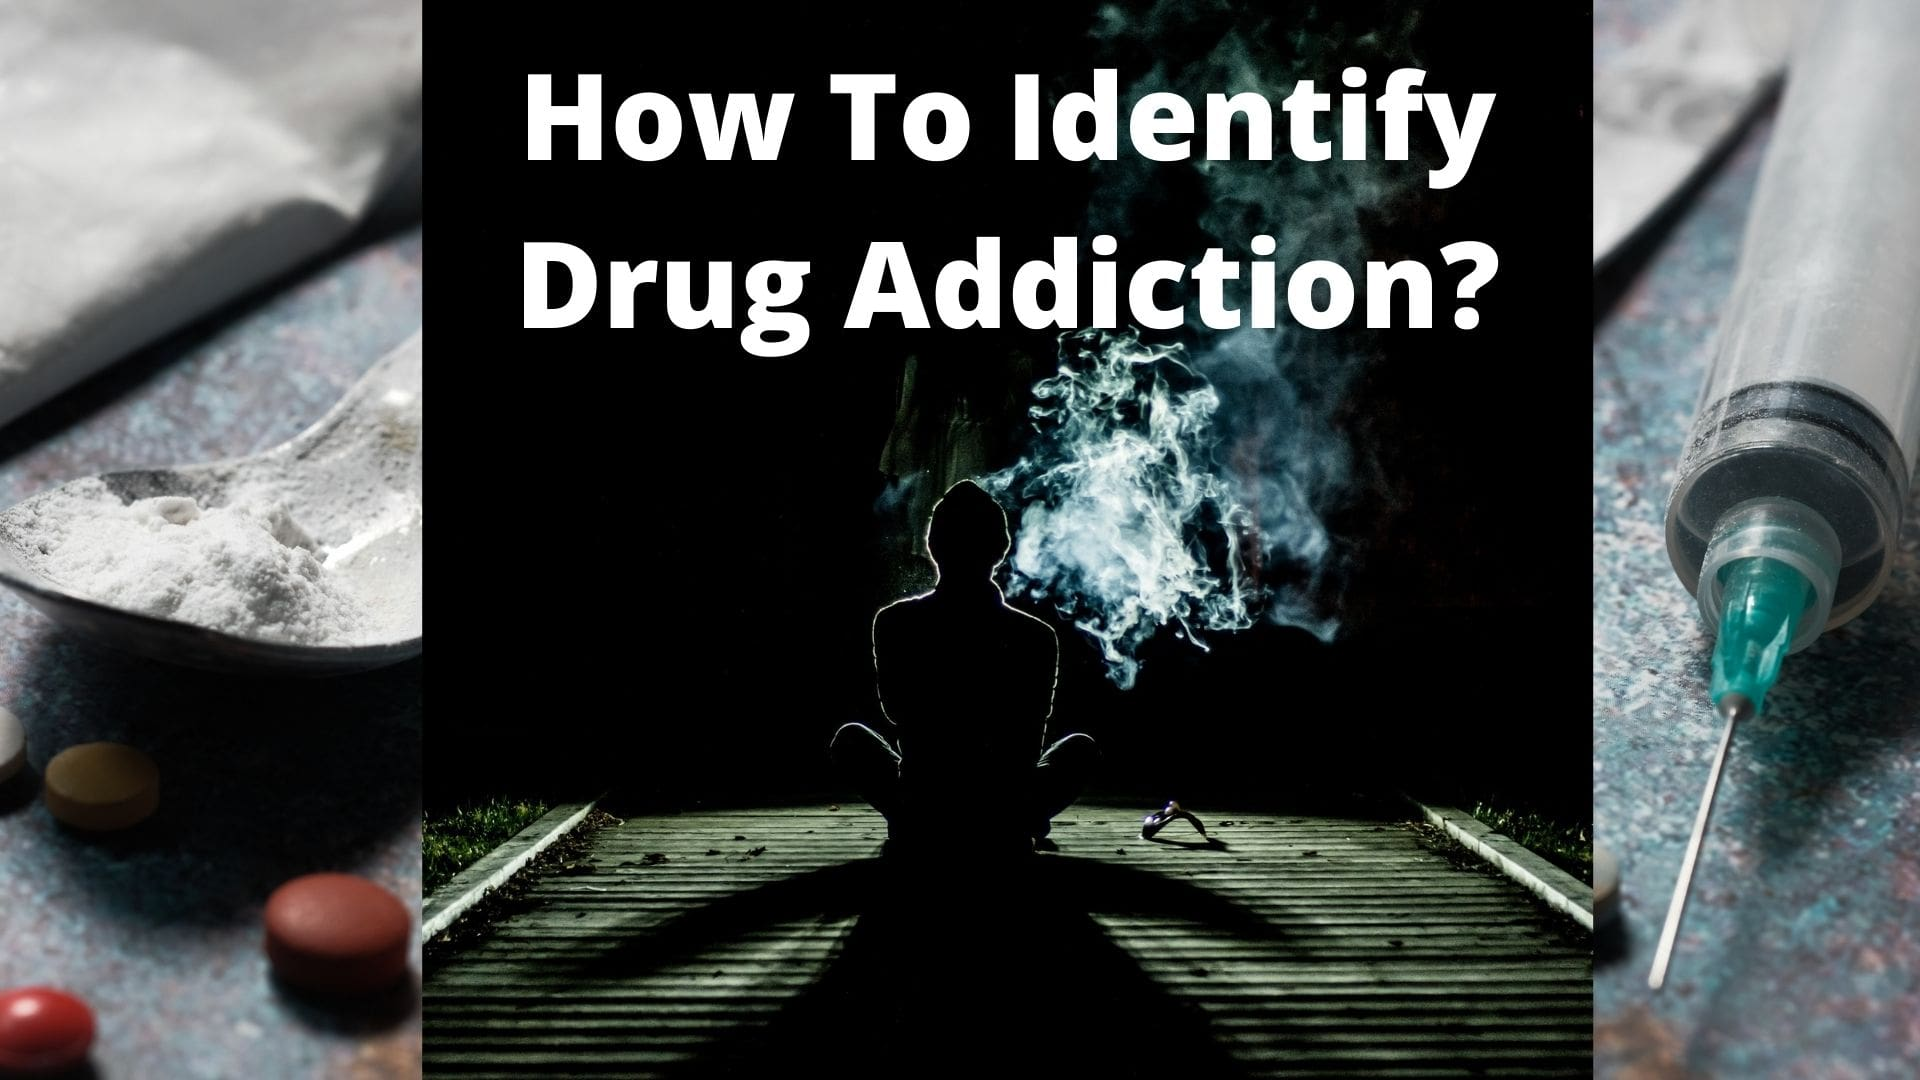 How To Identify Drug Addiction